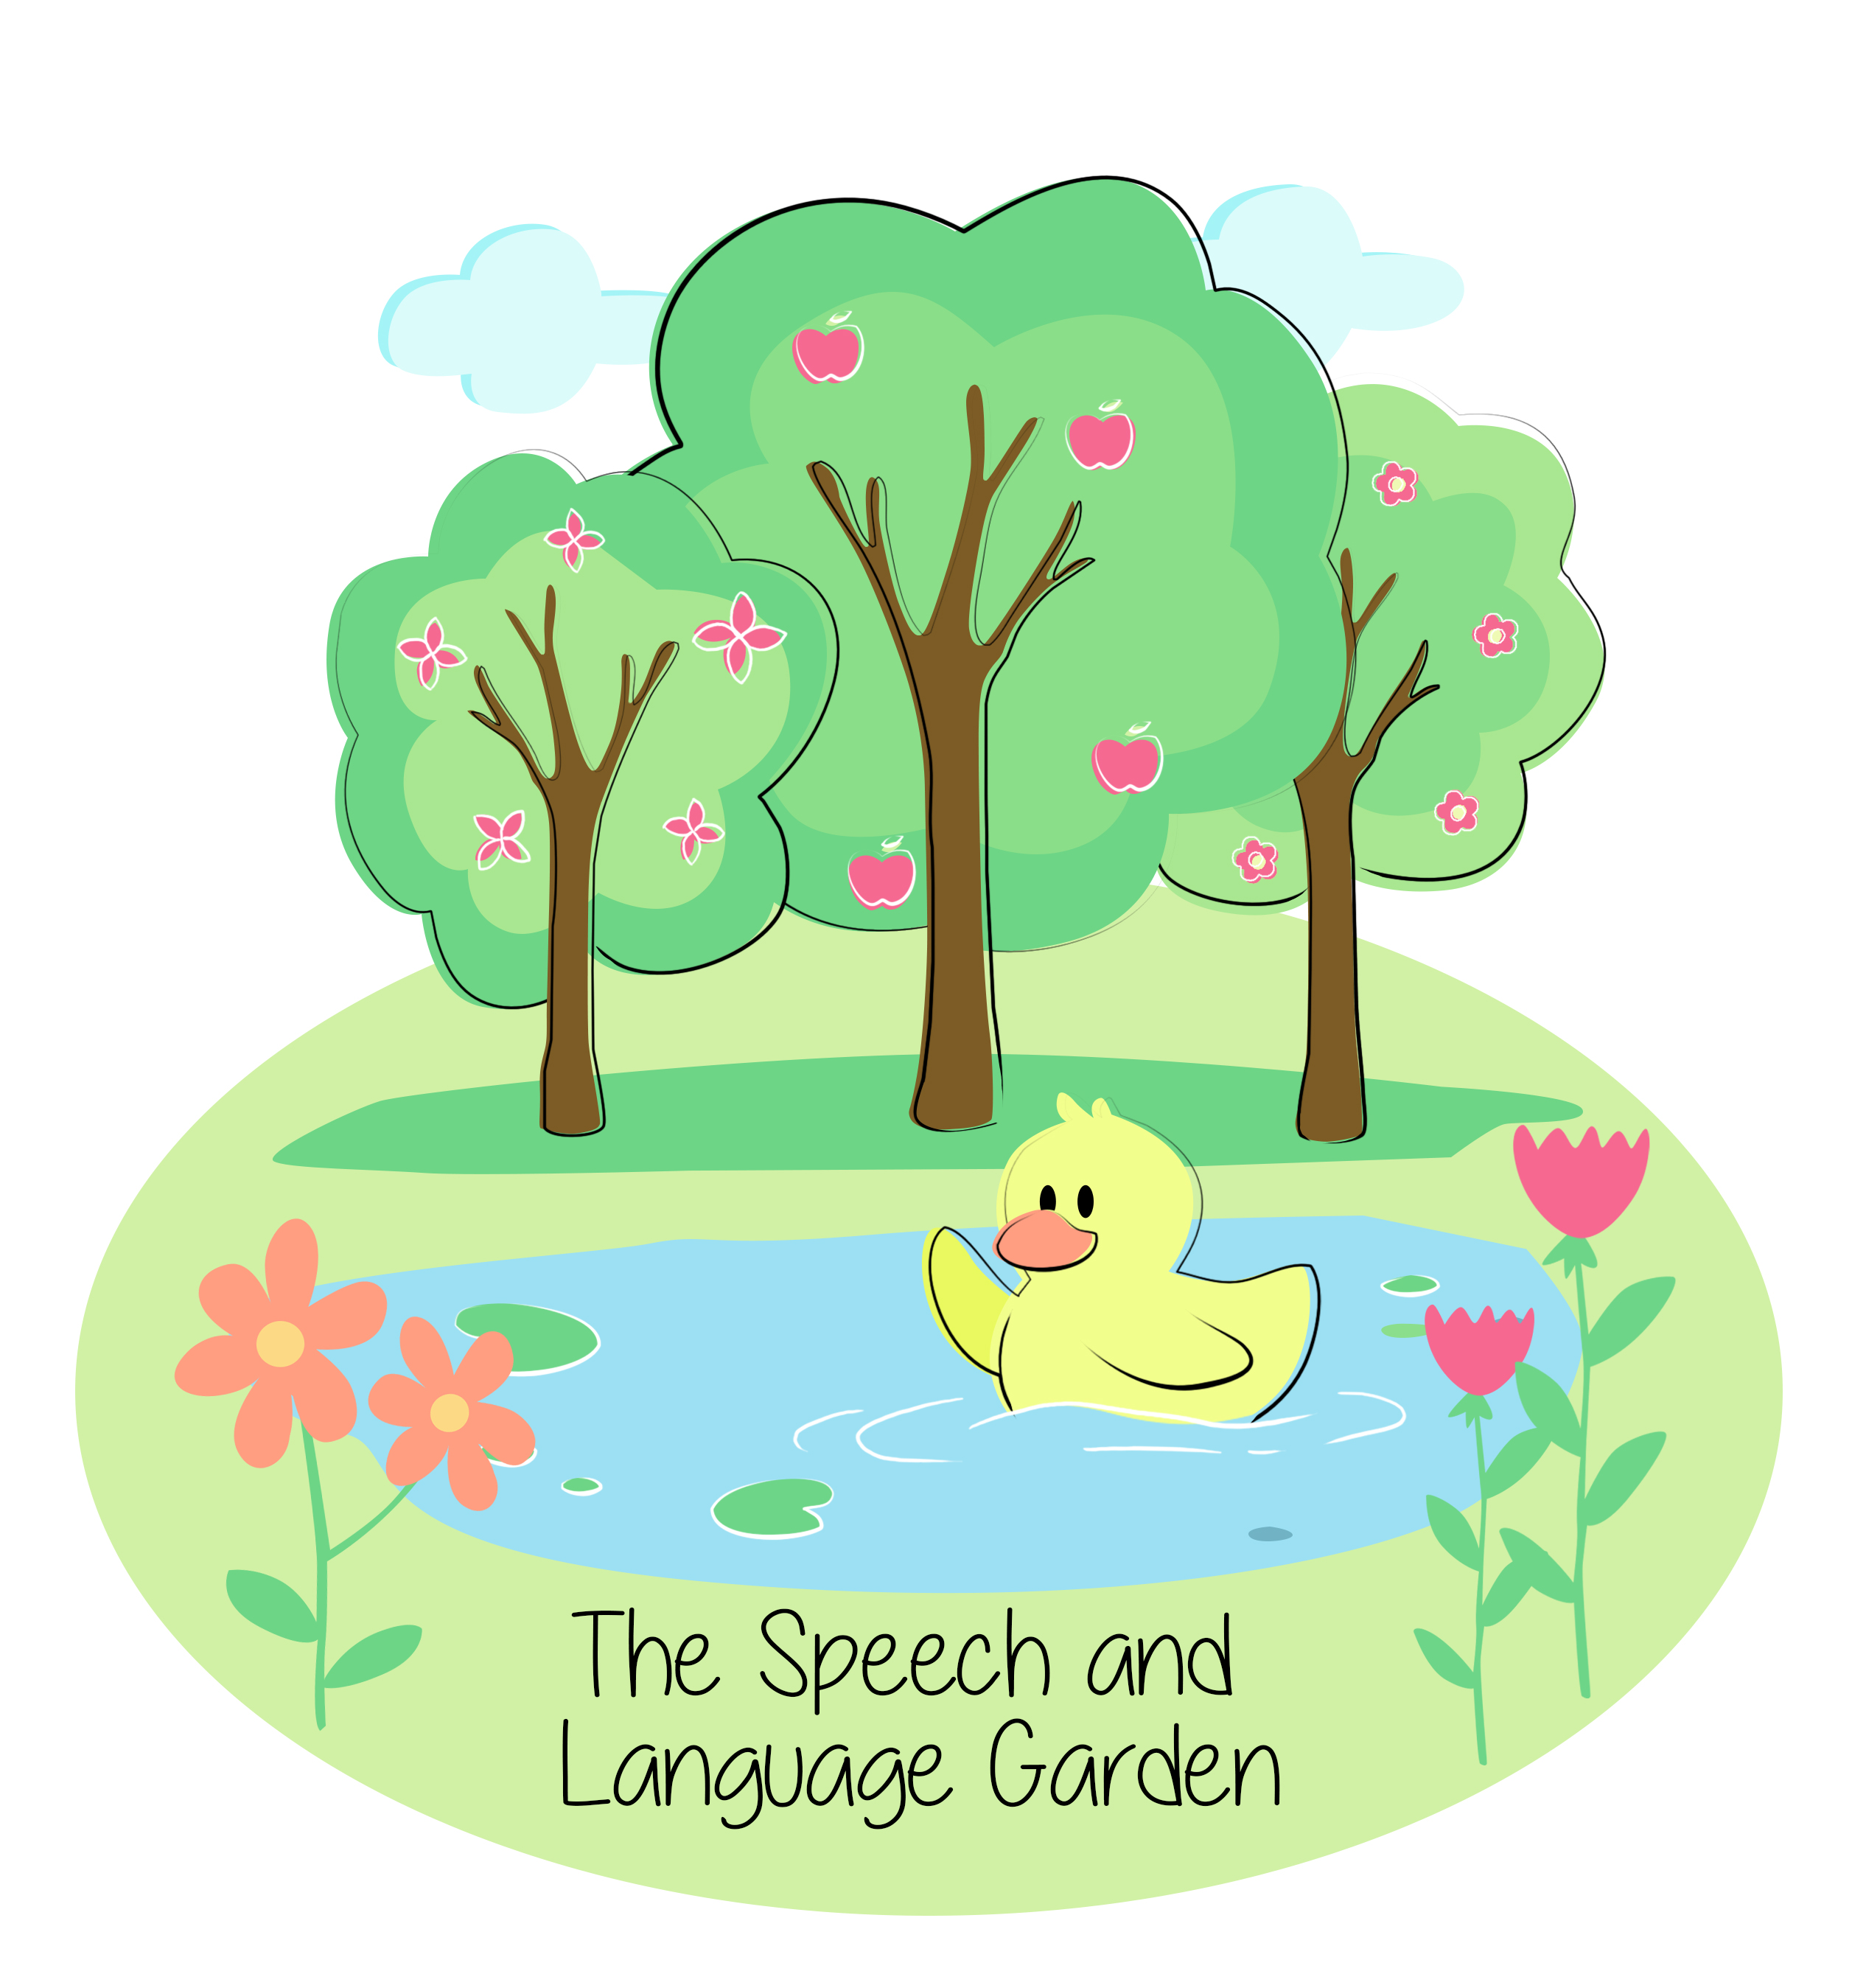 The Speech and Language Garden